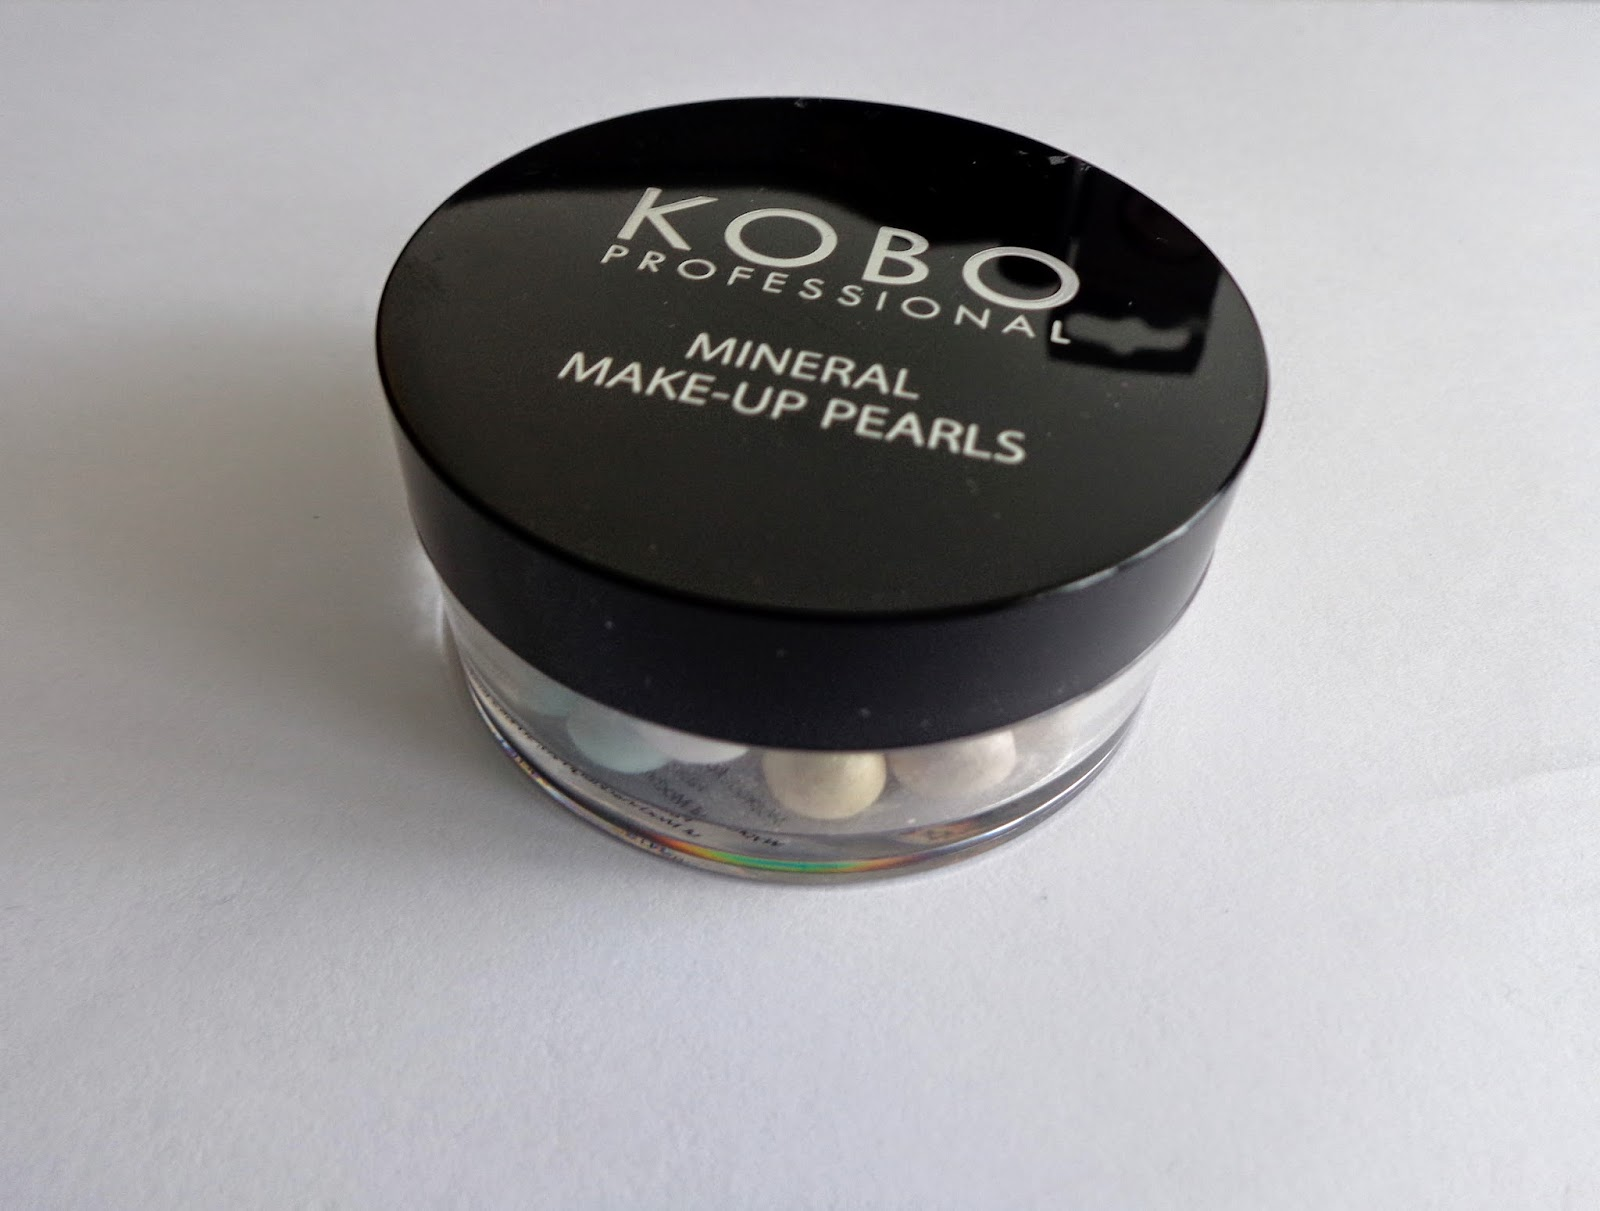 kobo mineral make up pearls puder w kulkach. Black Bedroom Furniture Sets. Home Design Ideas